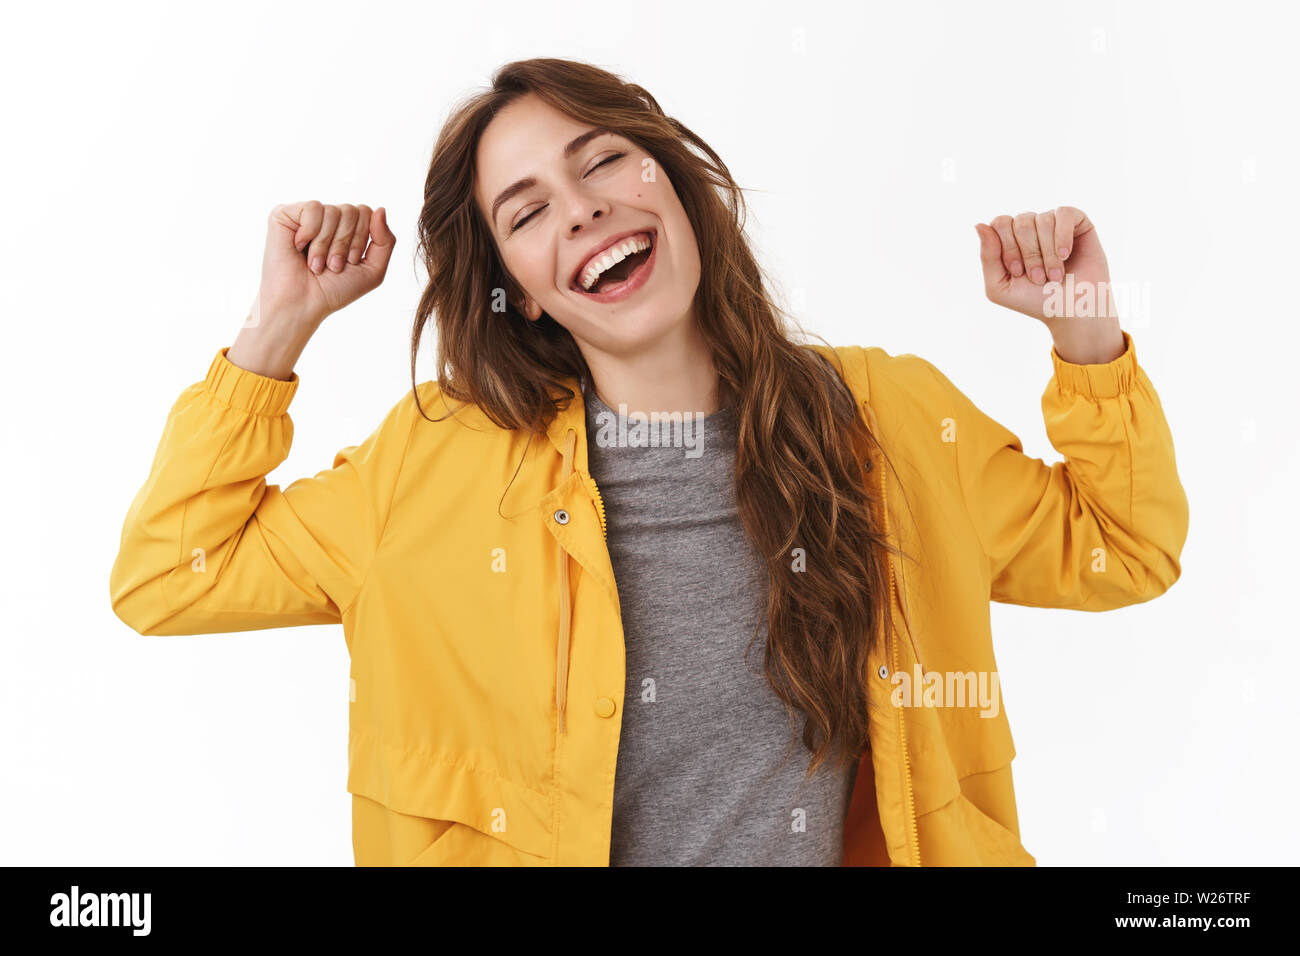 Lazy girl wanna take nap doing nothing all day. Silly cute european woman yawning hands raised stretching body feel energized waking up afternoon stan - Stock Image